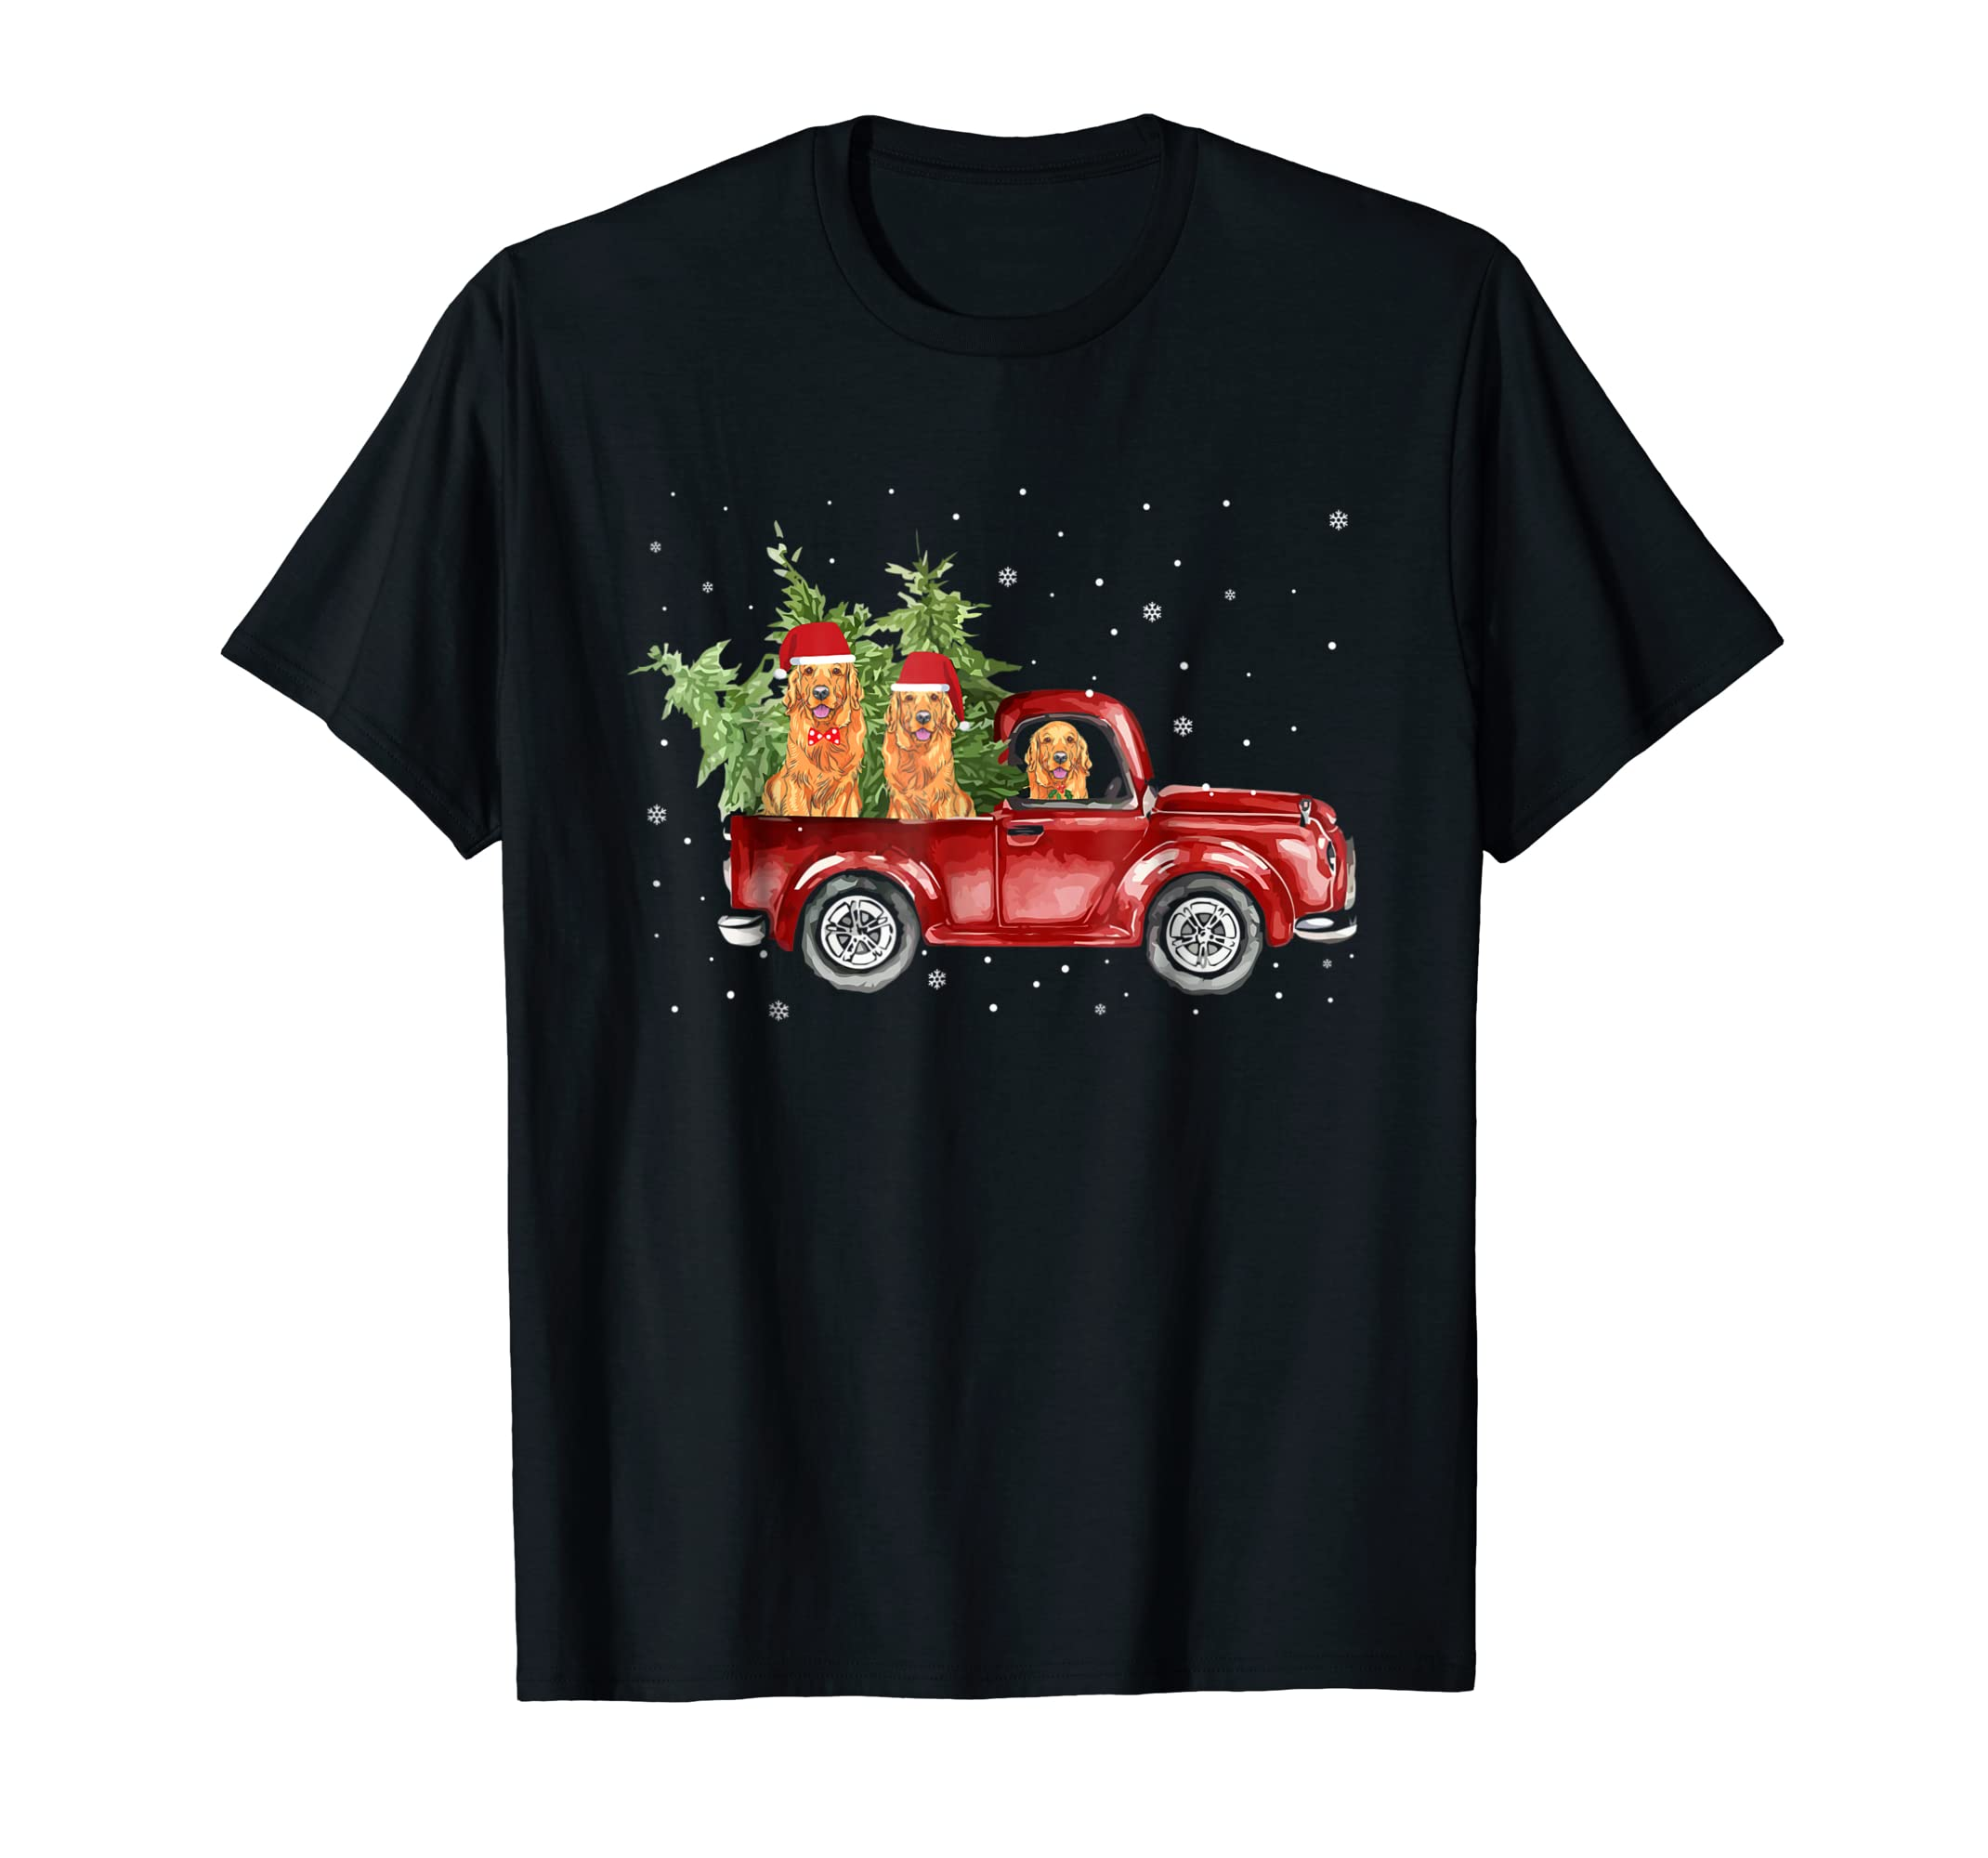 Golden Retriever Pickup Truck Christmas Tshirt-Men's T-Shirt-Black